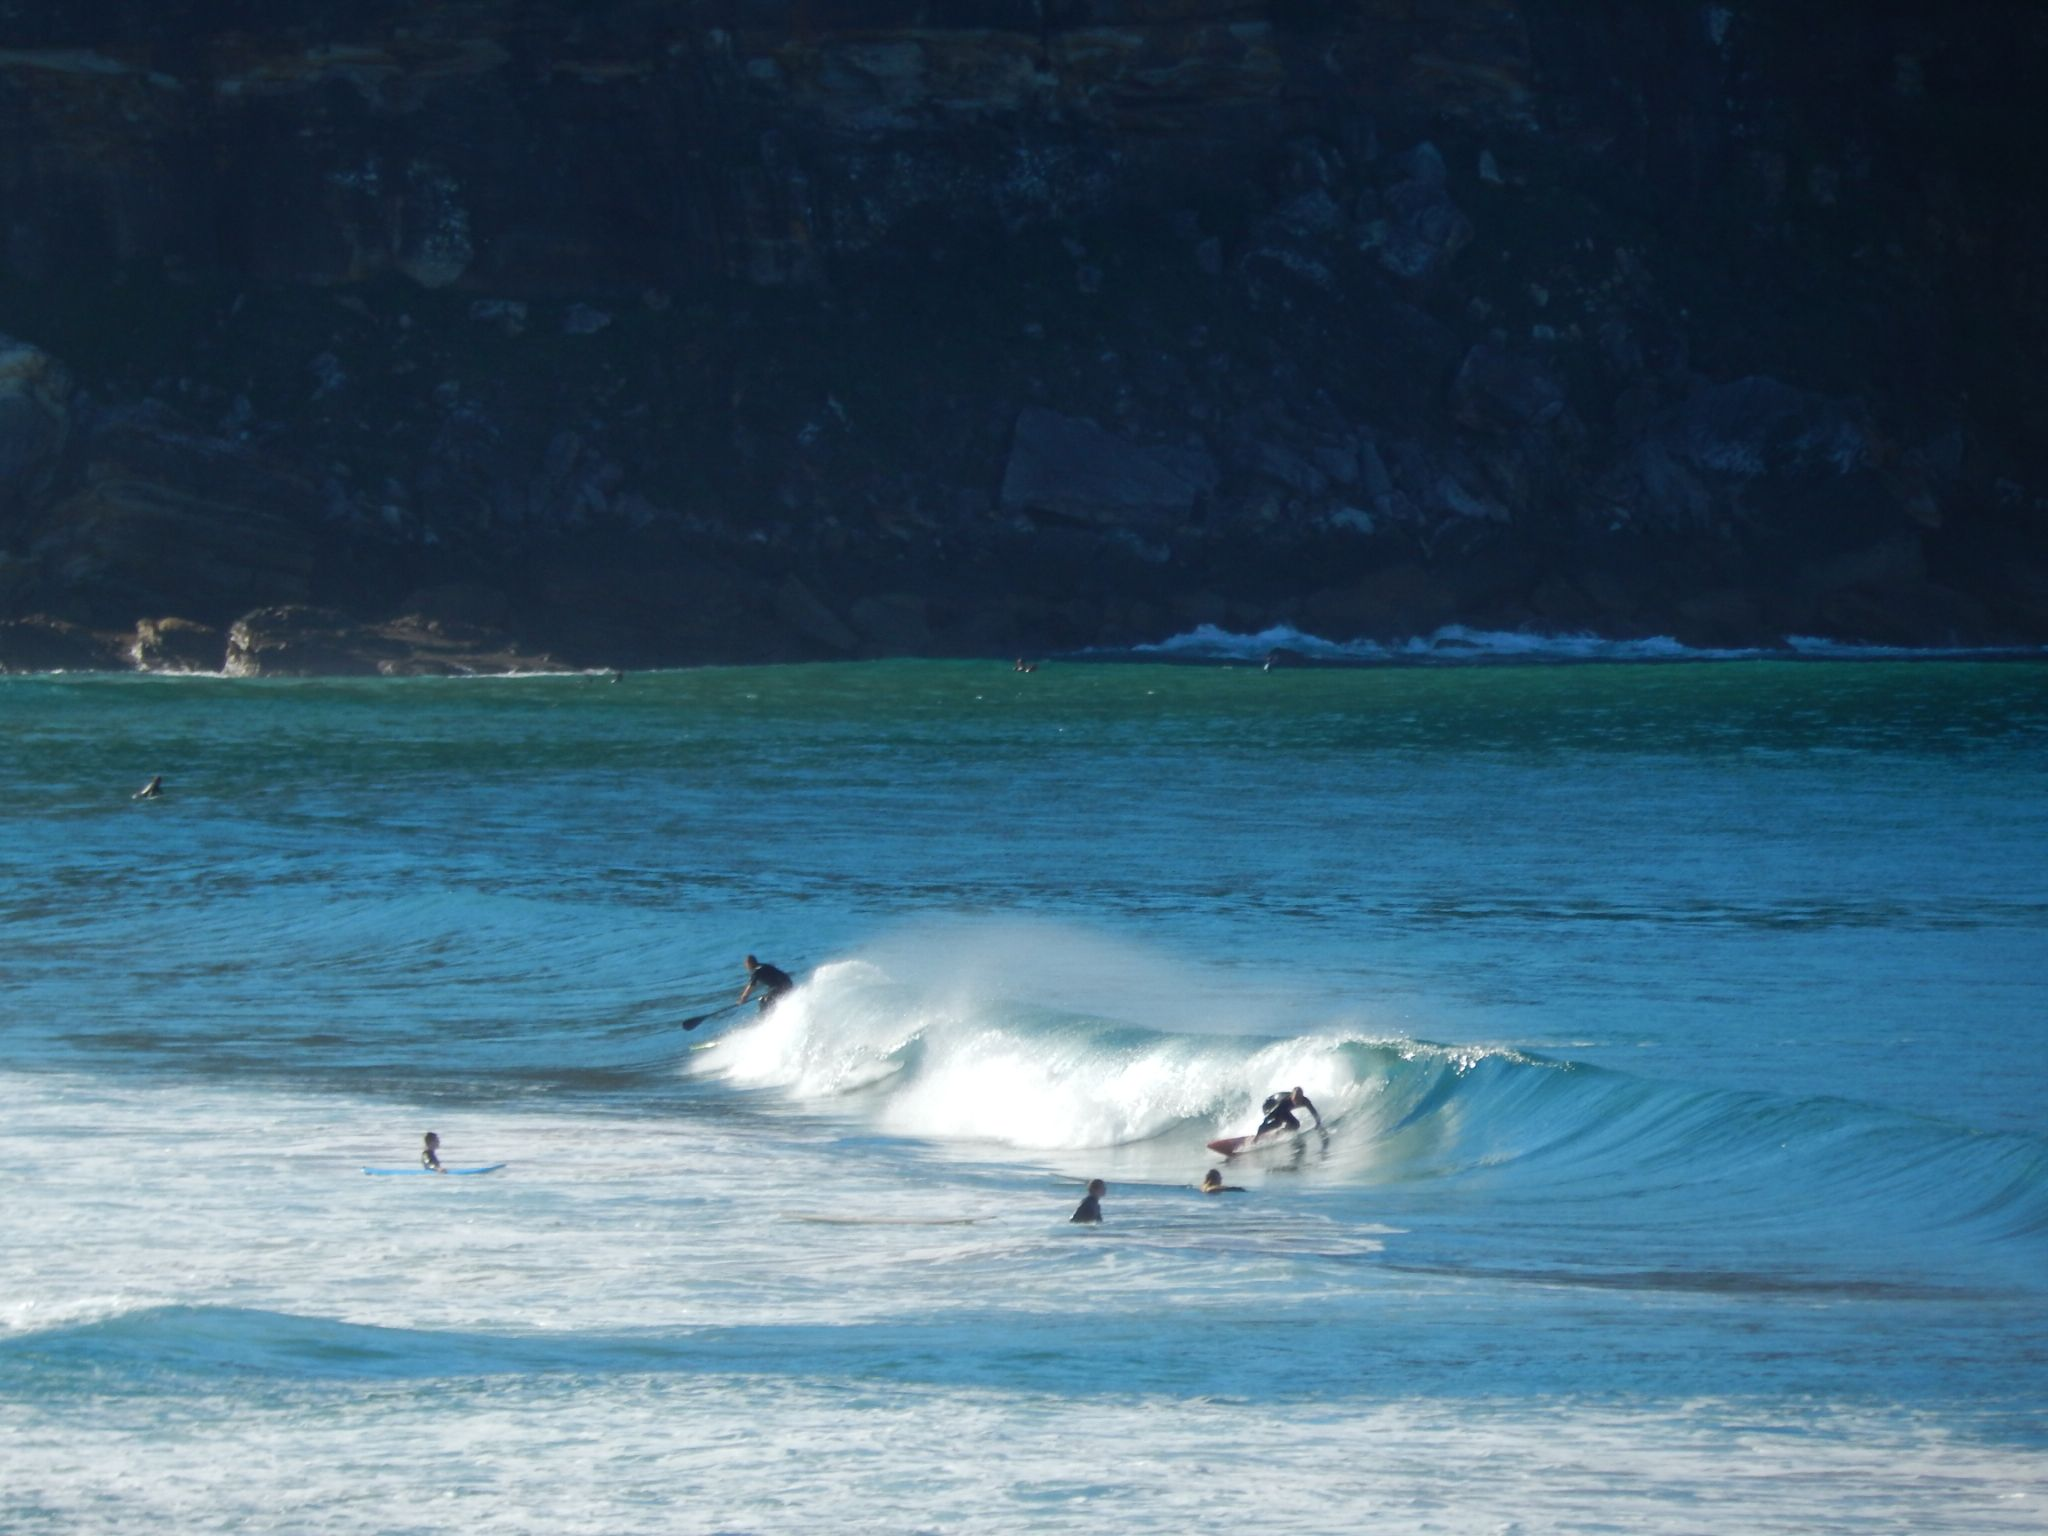 surfing at Summer Bay by twiggy121864